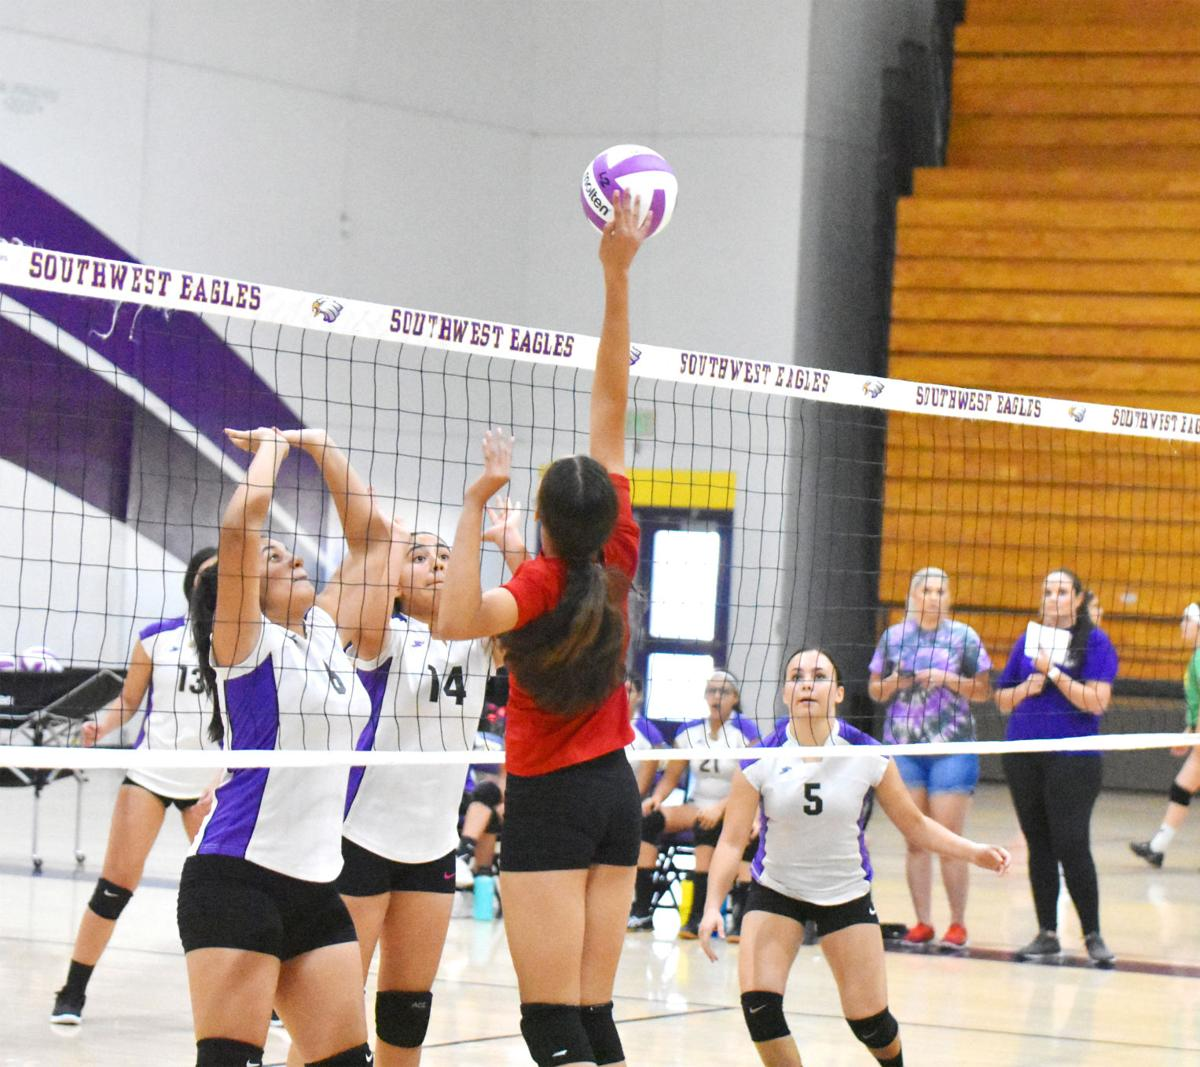 Pass, set, spike!: Day 1 of Southwest Volleyball Carnival kicks off with freshmen and JV